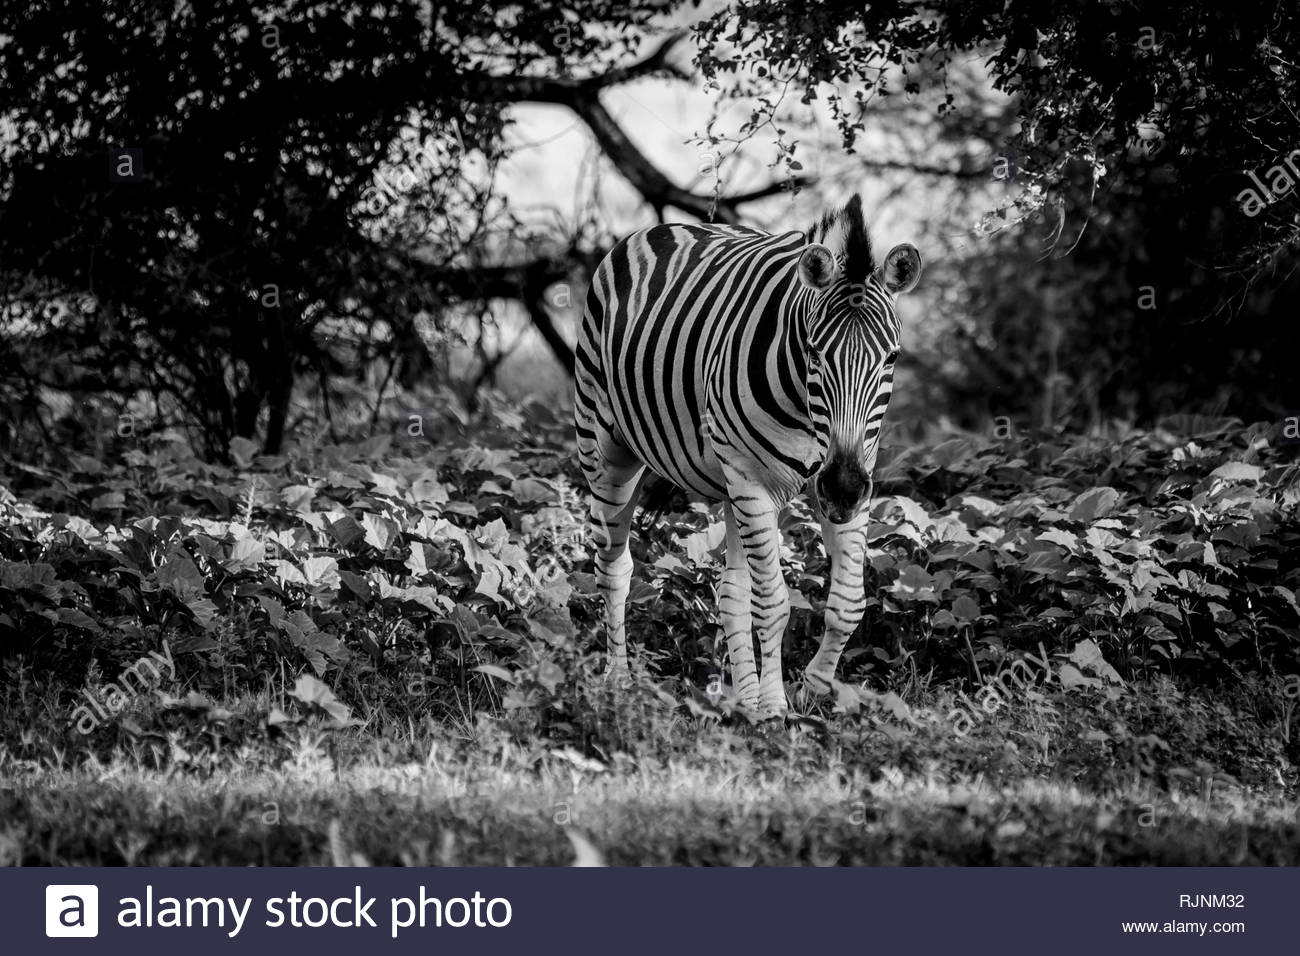 Black and white picture of a walking zebra in the bushes in City of Tshwane, Gauteng, South Africa - Stock Image